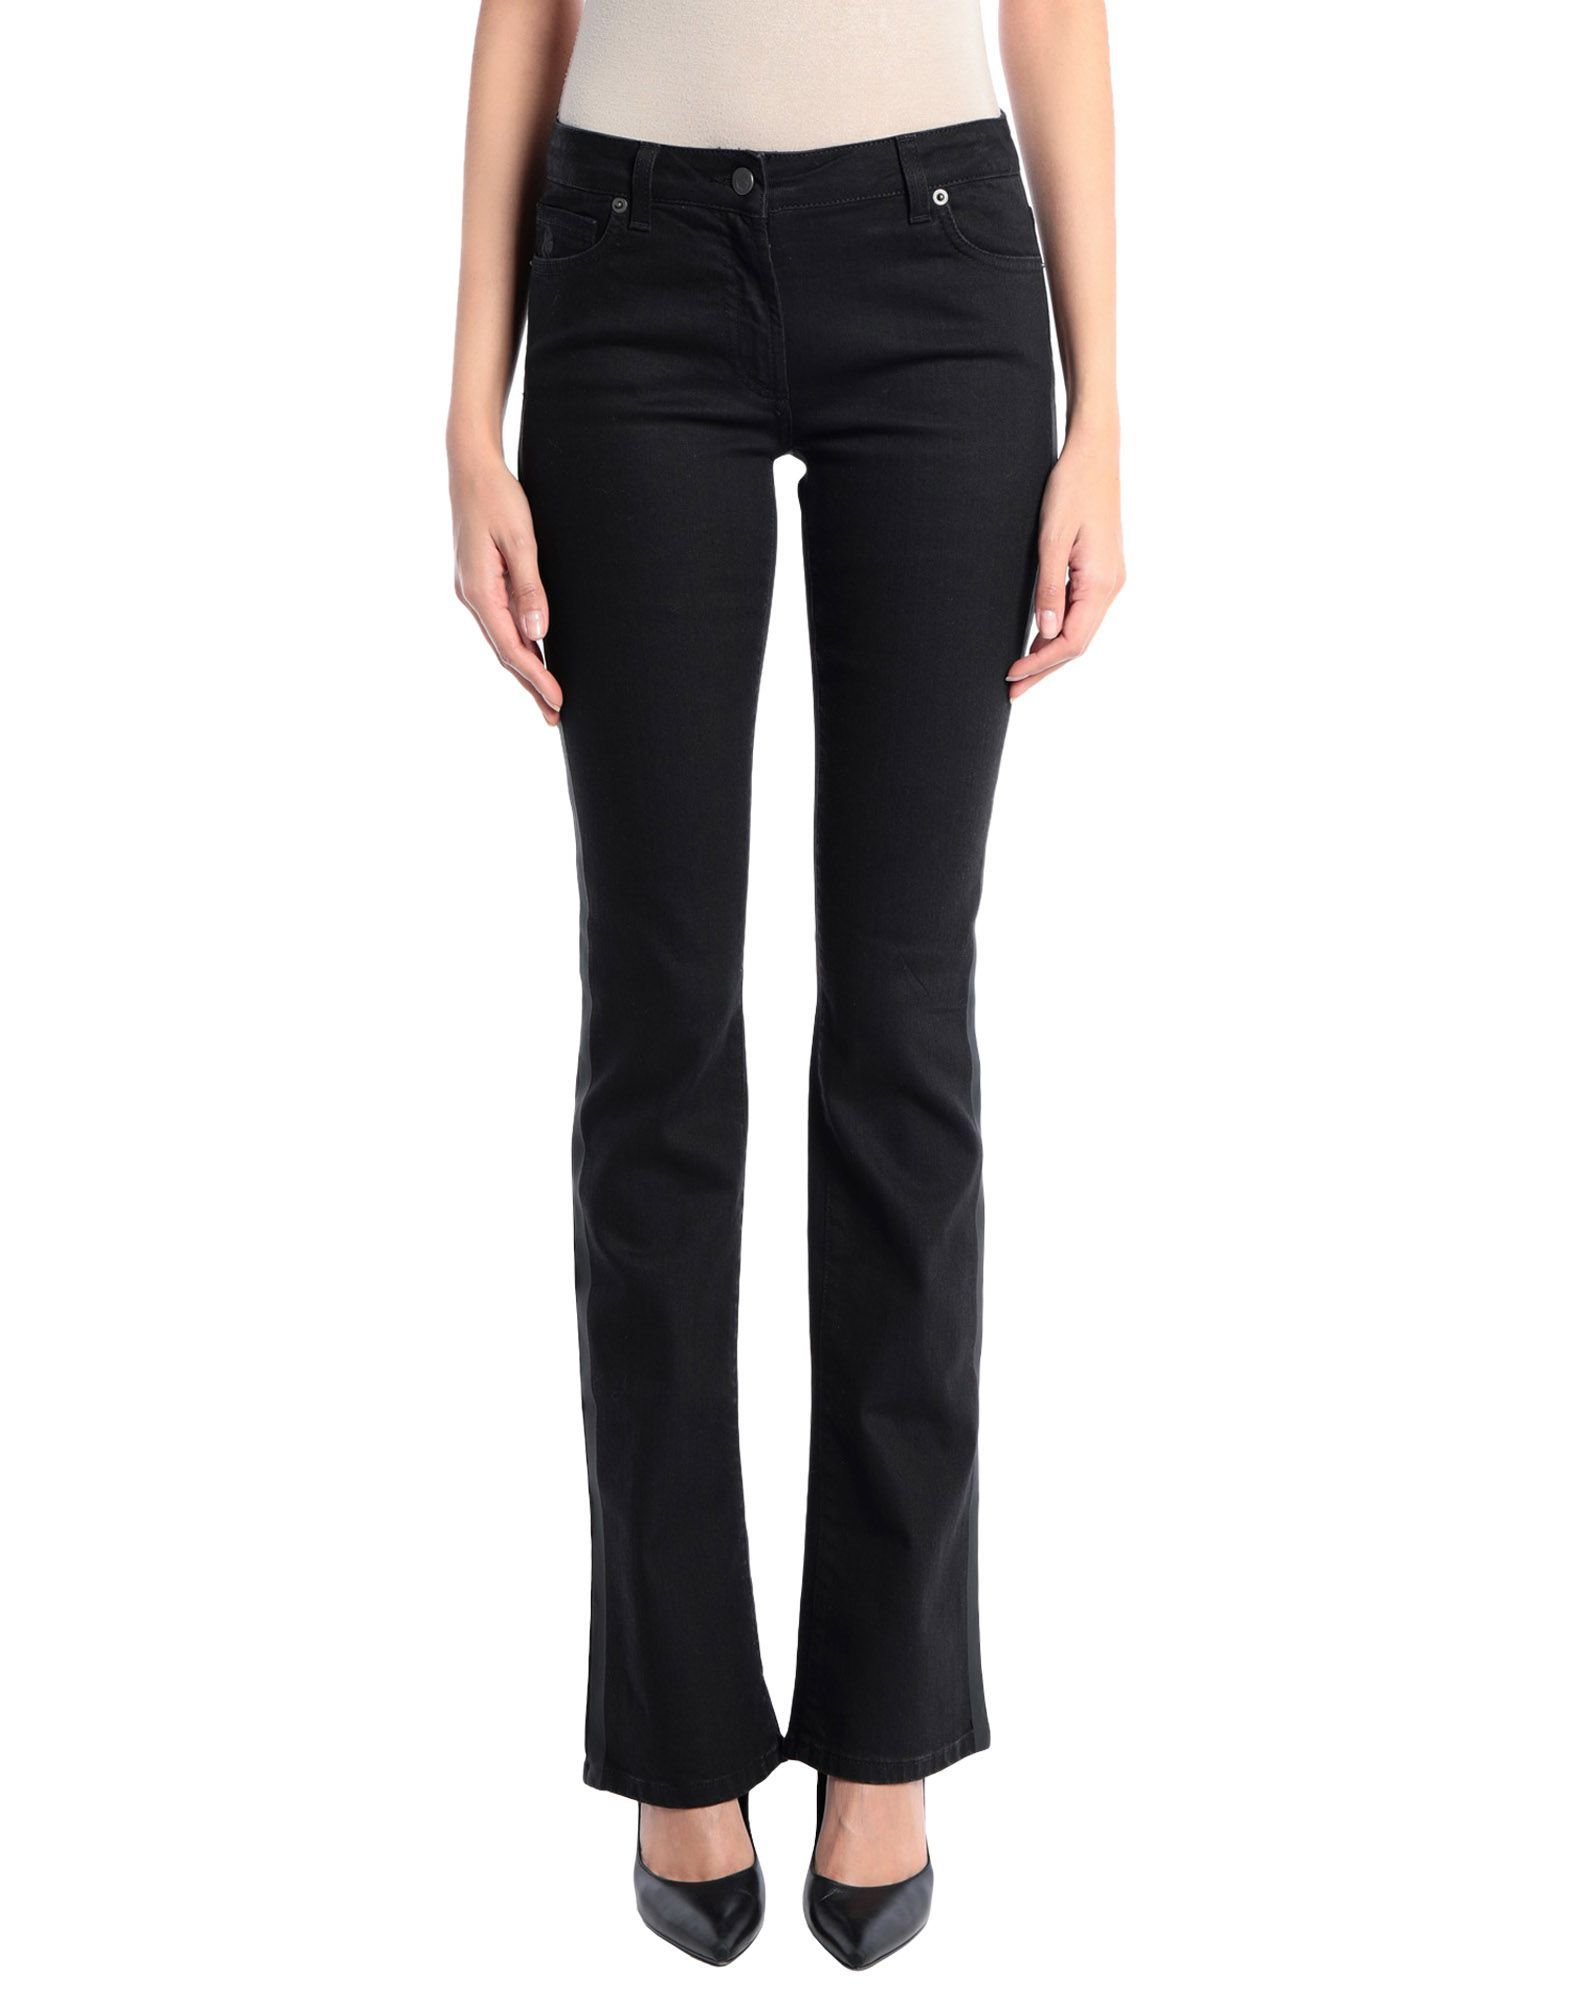 Karl Lagerfeld Black Cotton Low Waisted Jeans